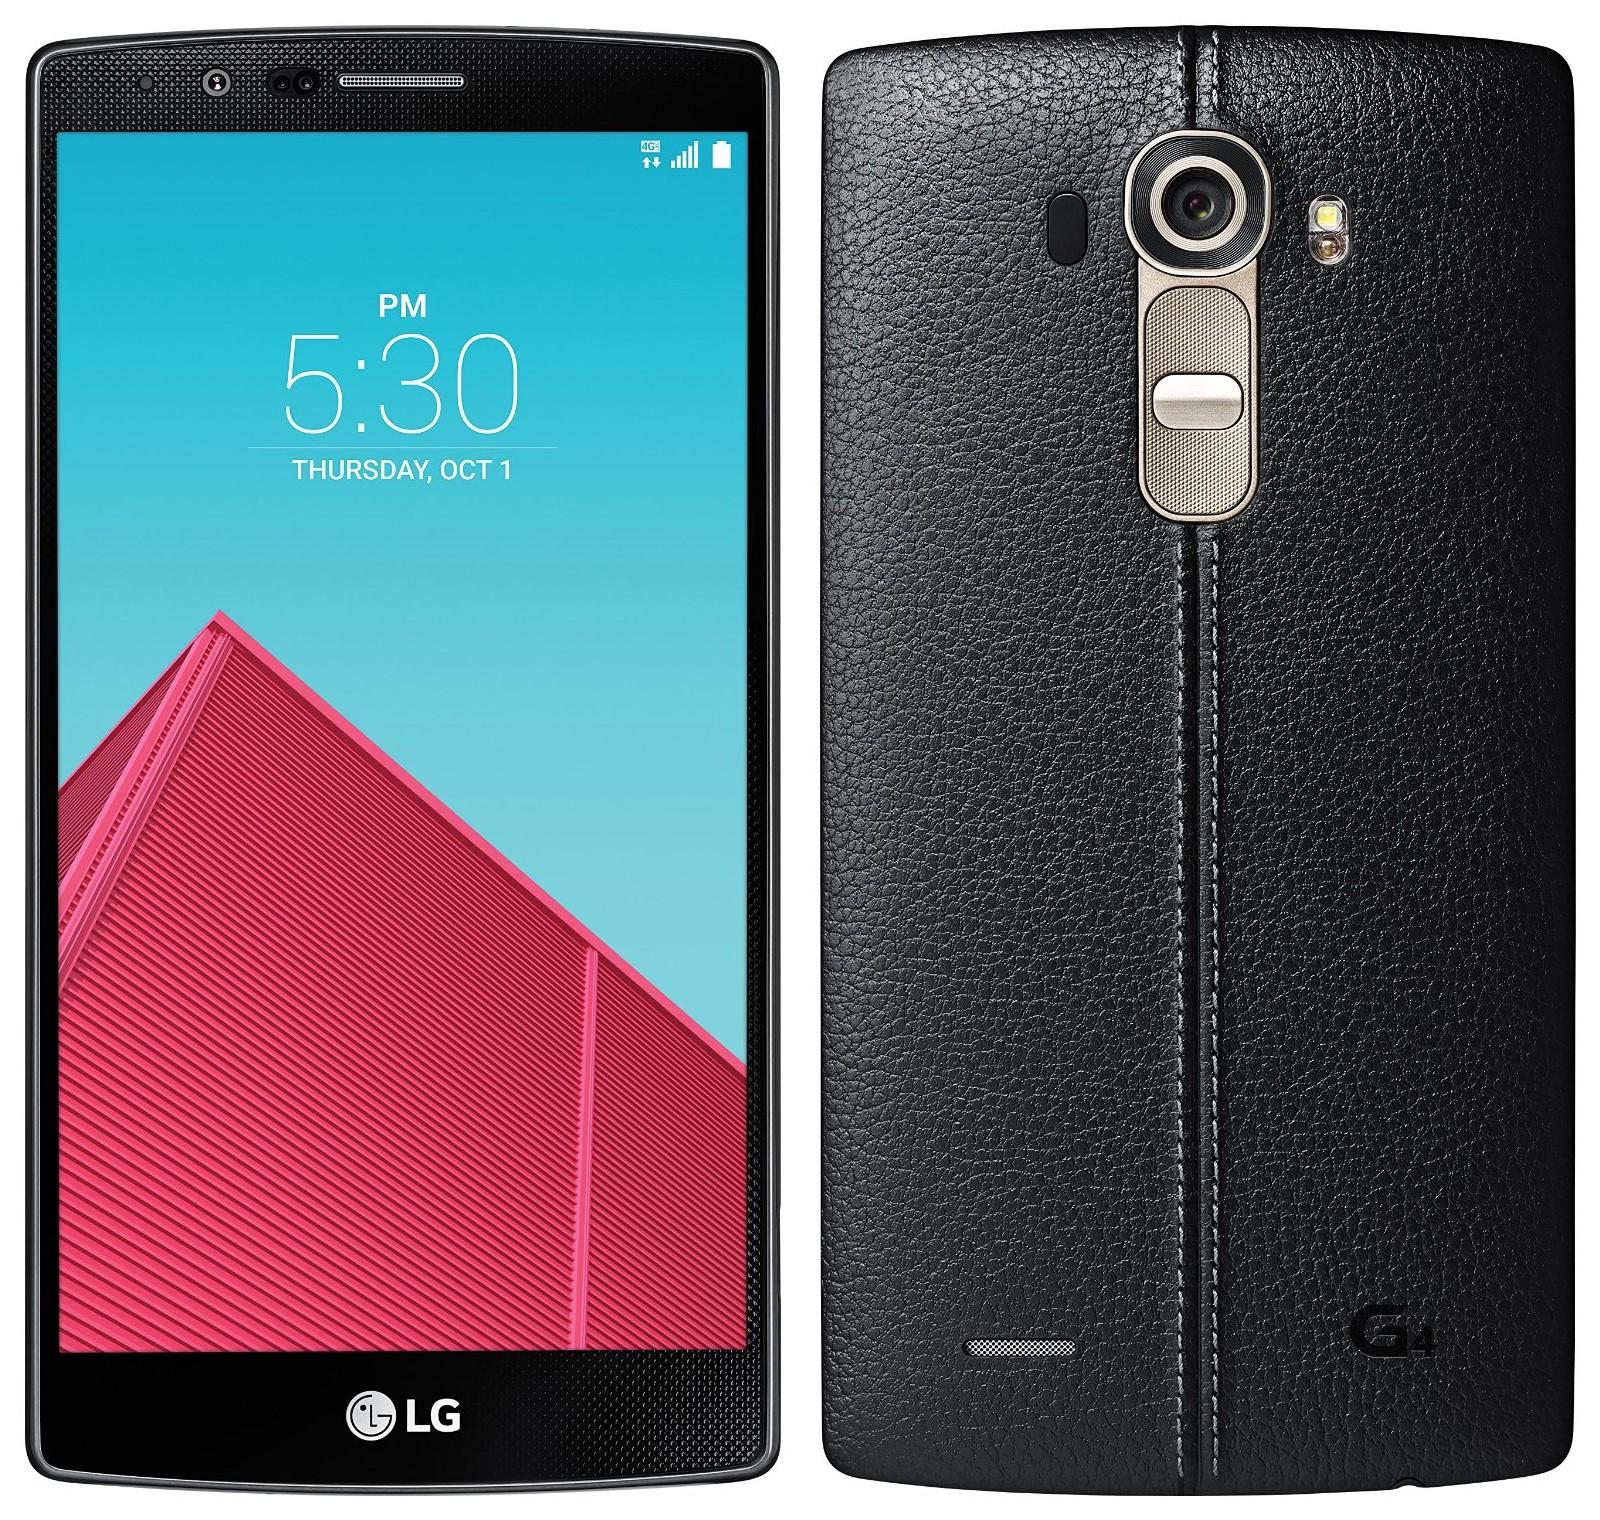 LG G4 Unlocked - Black Leather 32GB (U.S. Warranty)